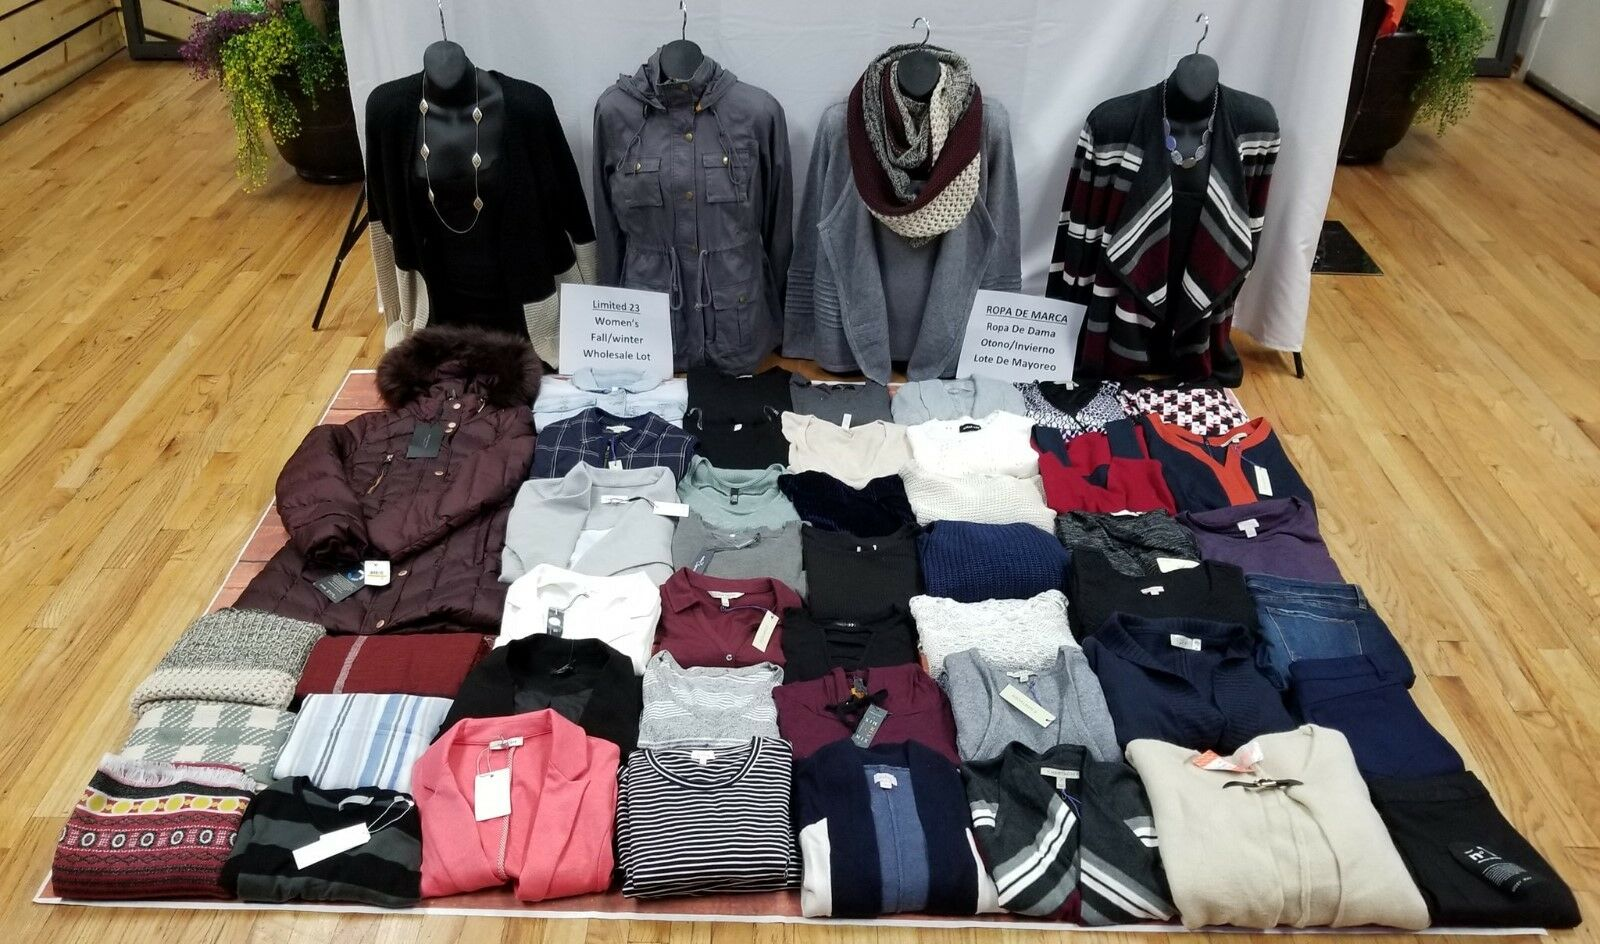 New Women's Fall Winter Wholesale Lot 50 Pieces Stitch Fix Brands